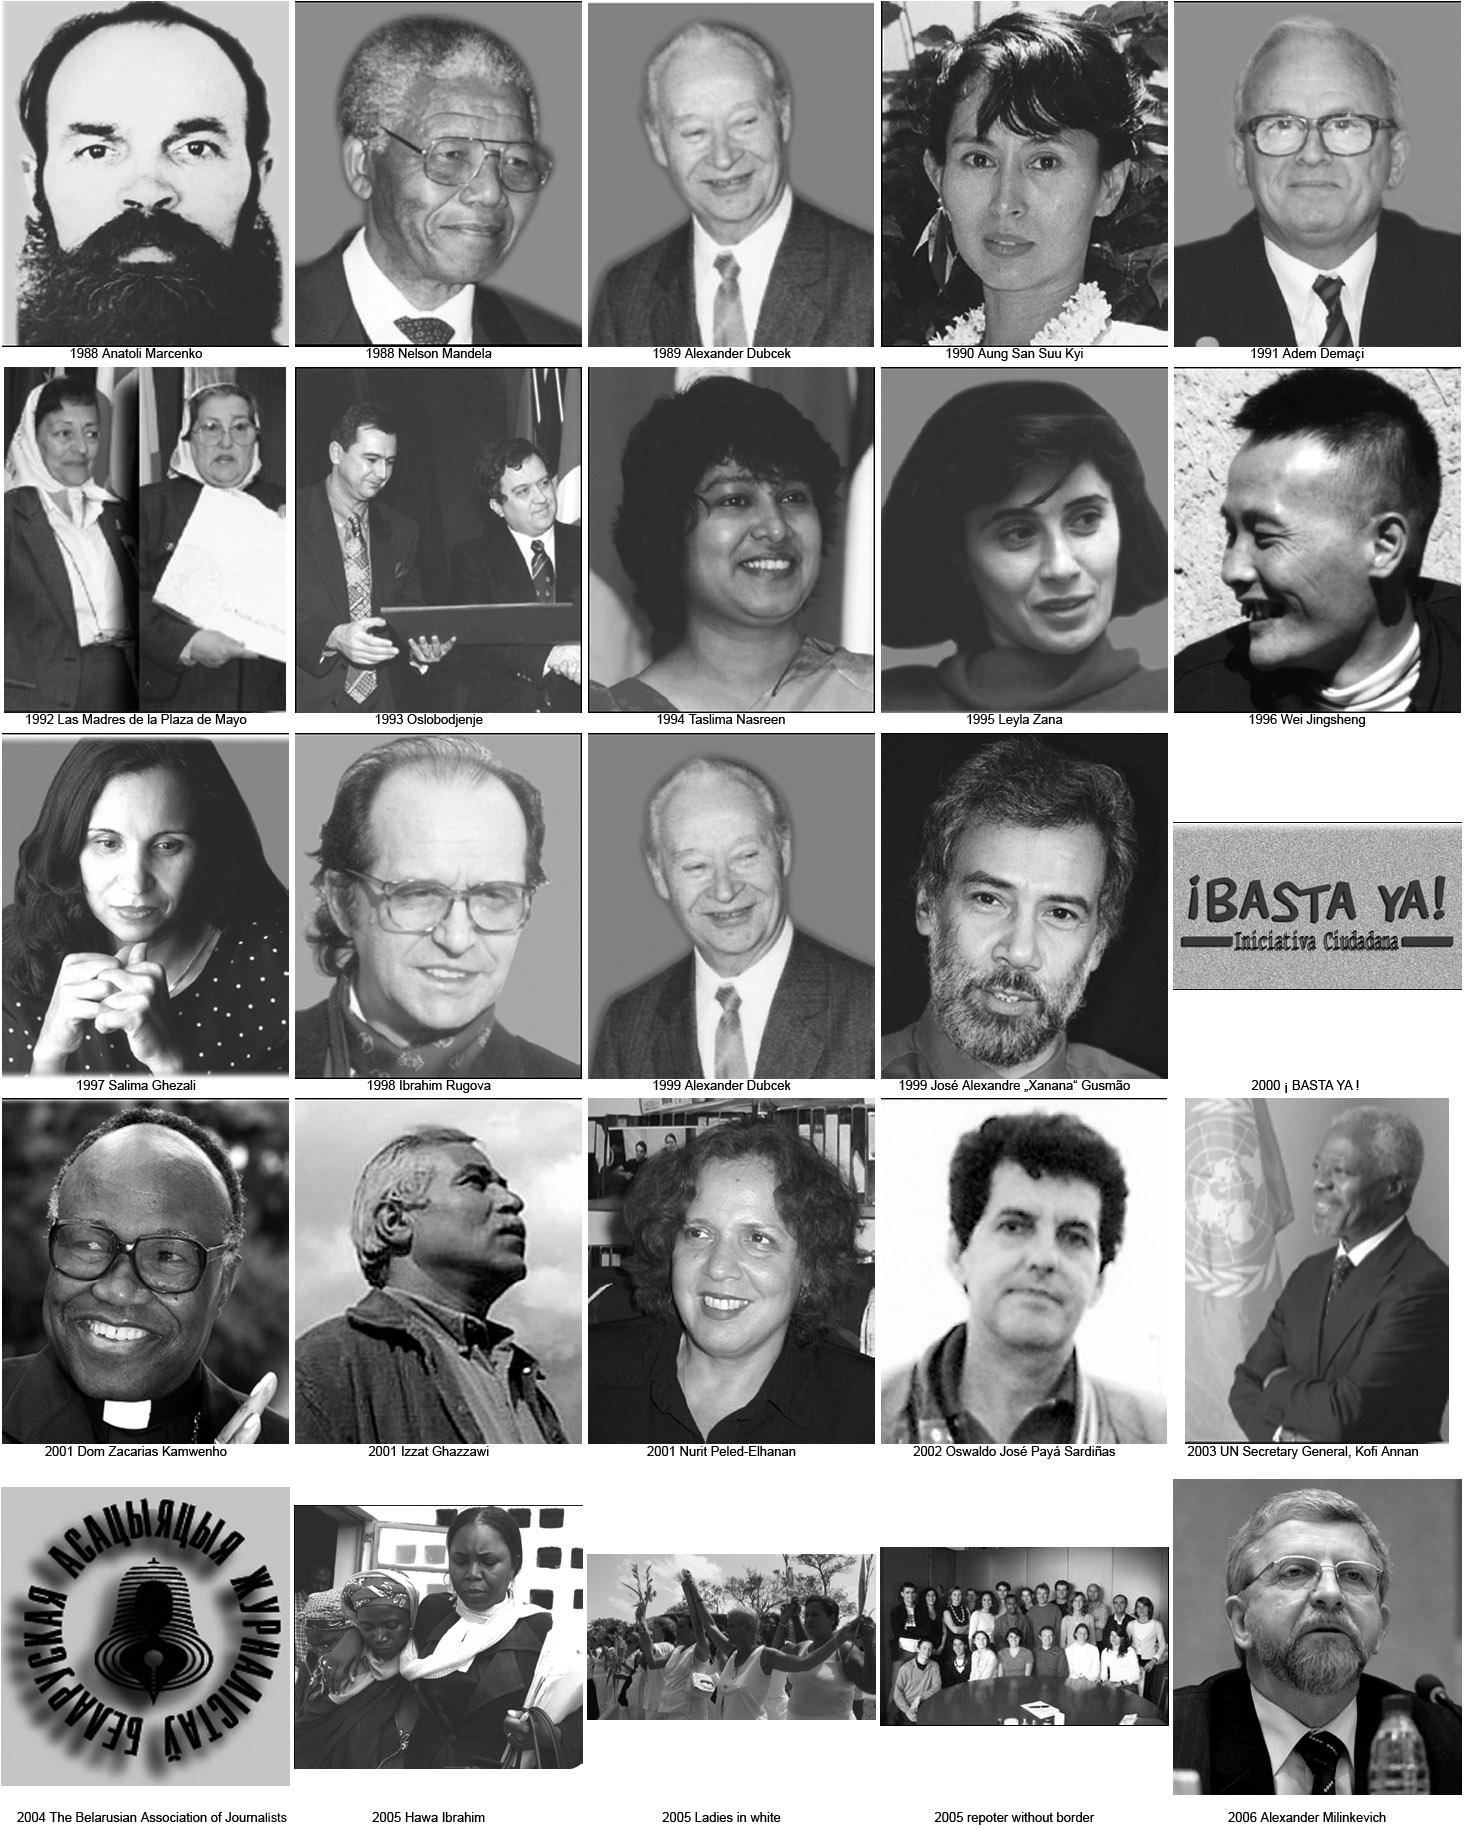 All the Sakharov prize winners, 1988-2006